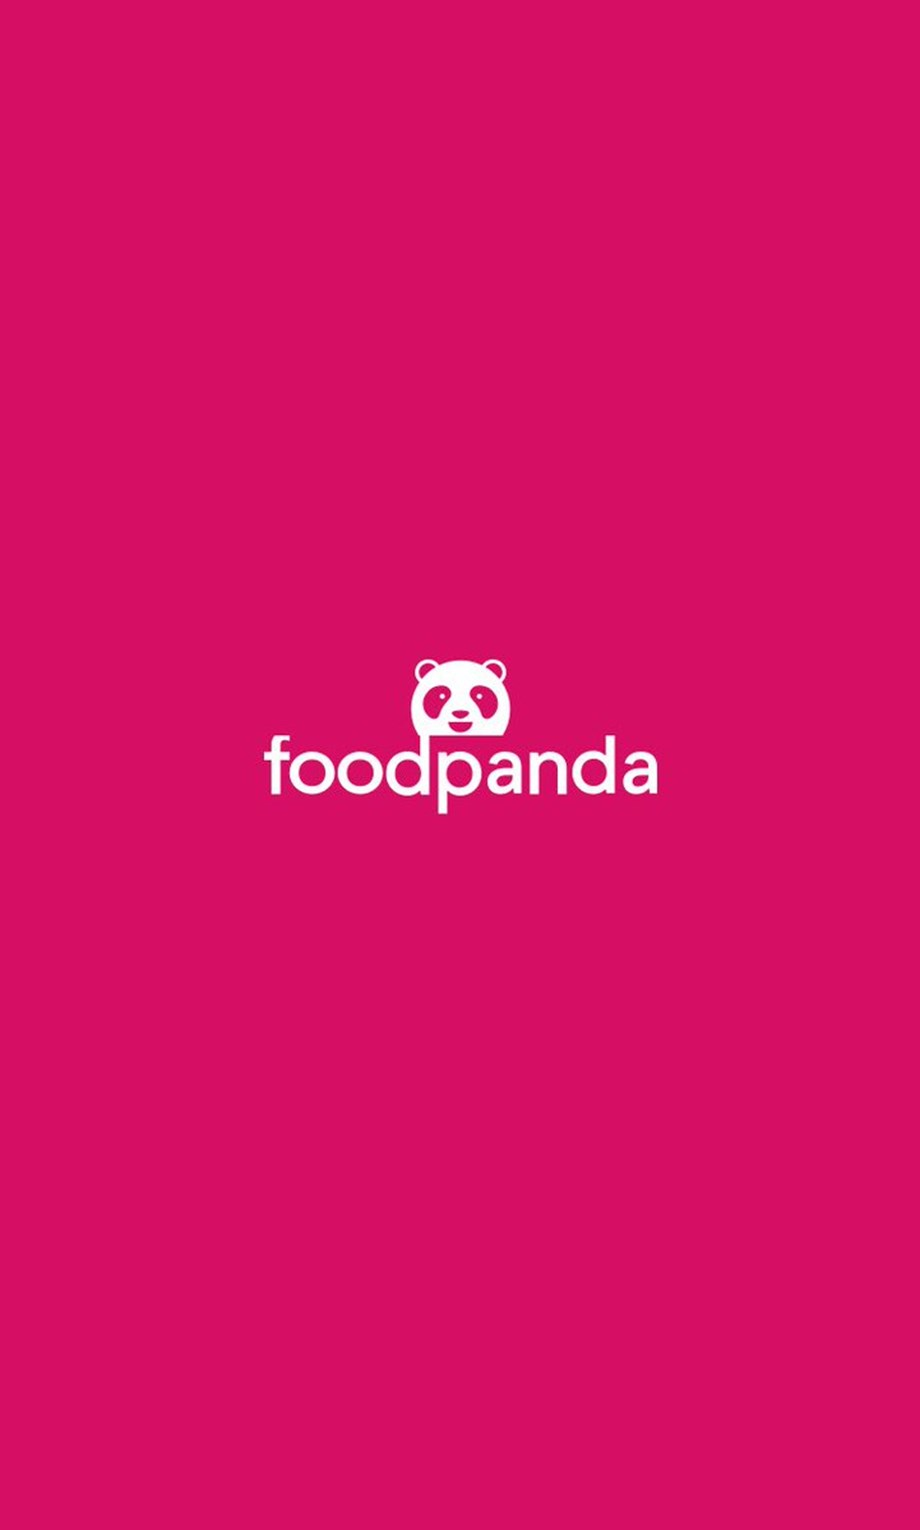 Tier 2, 3 cities contributing over 40% to business: Foodpanda